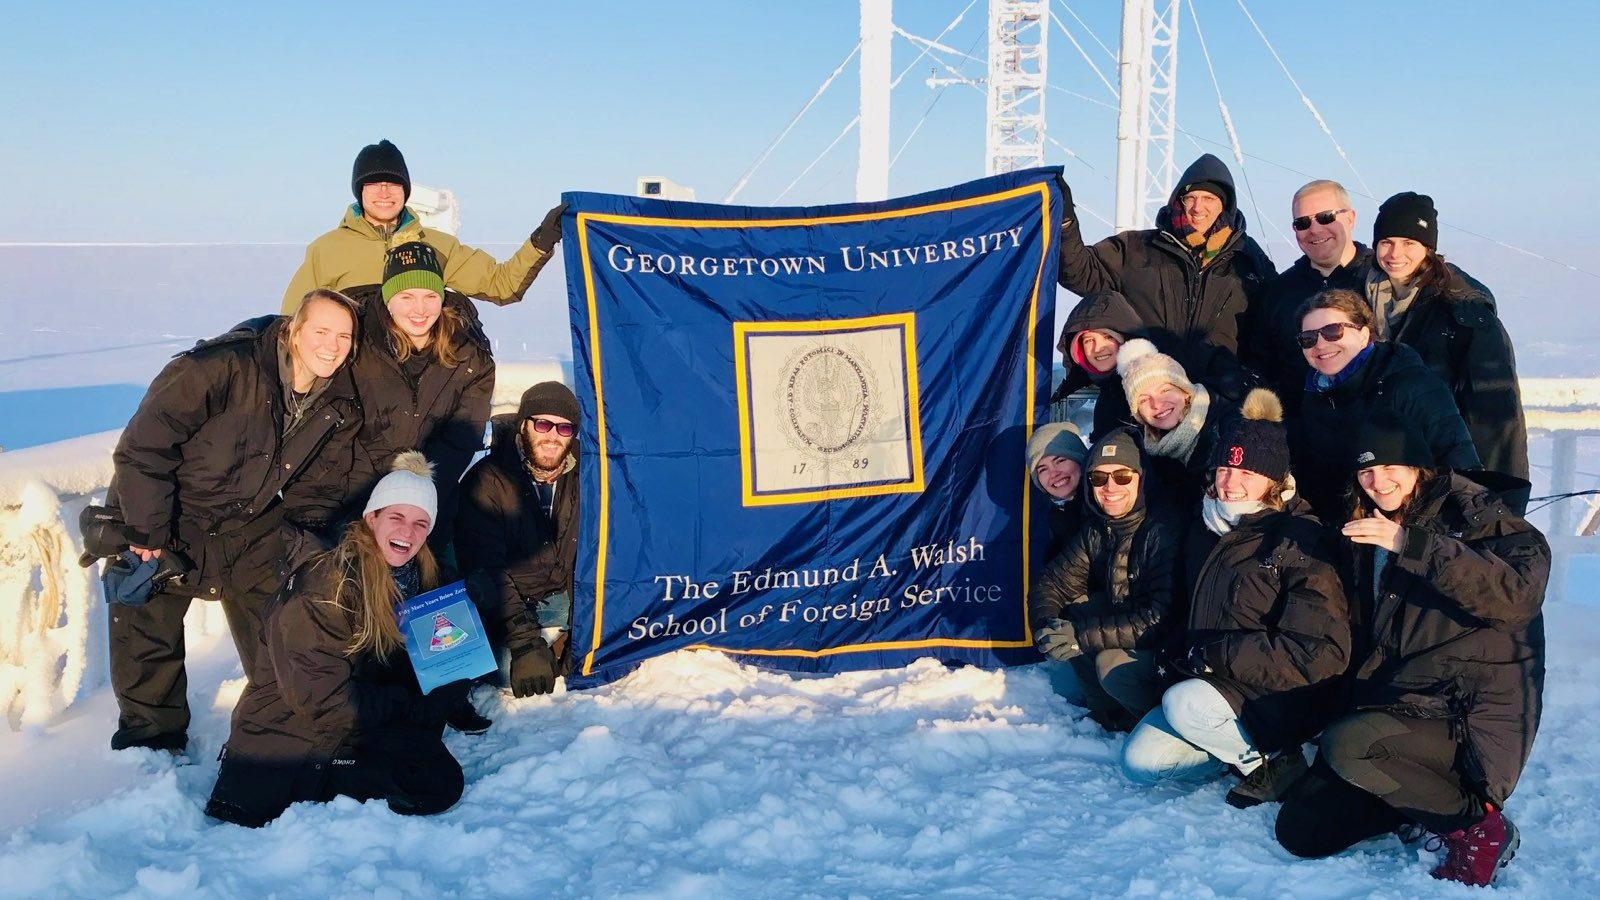 SFS students and professors pose in the snow. A mast is visible behind the group, which carries an SFS banner.